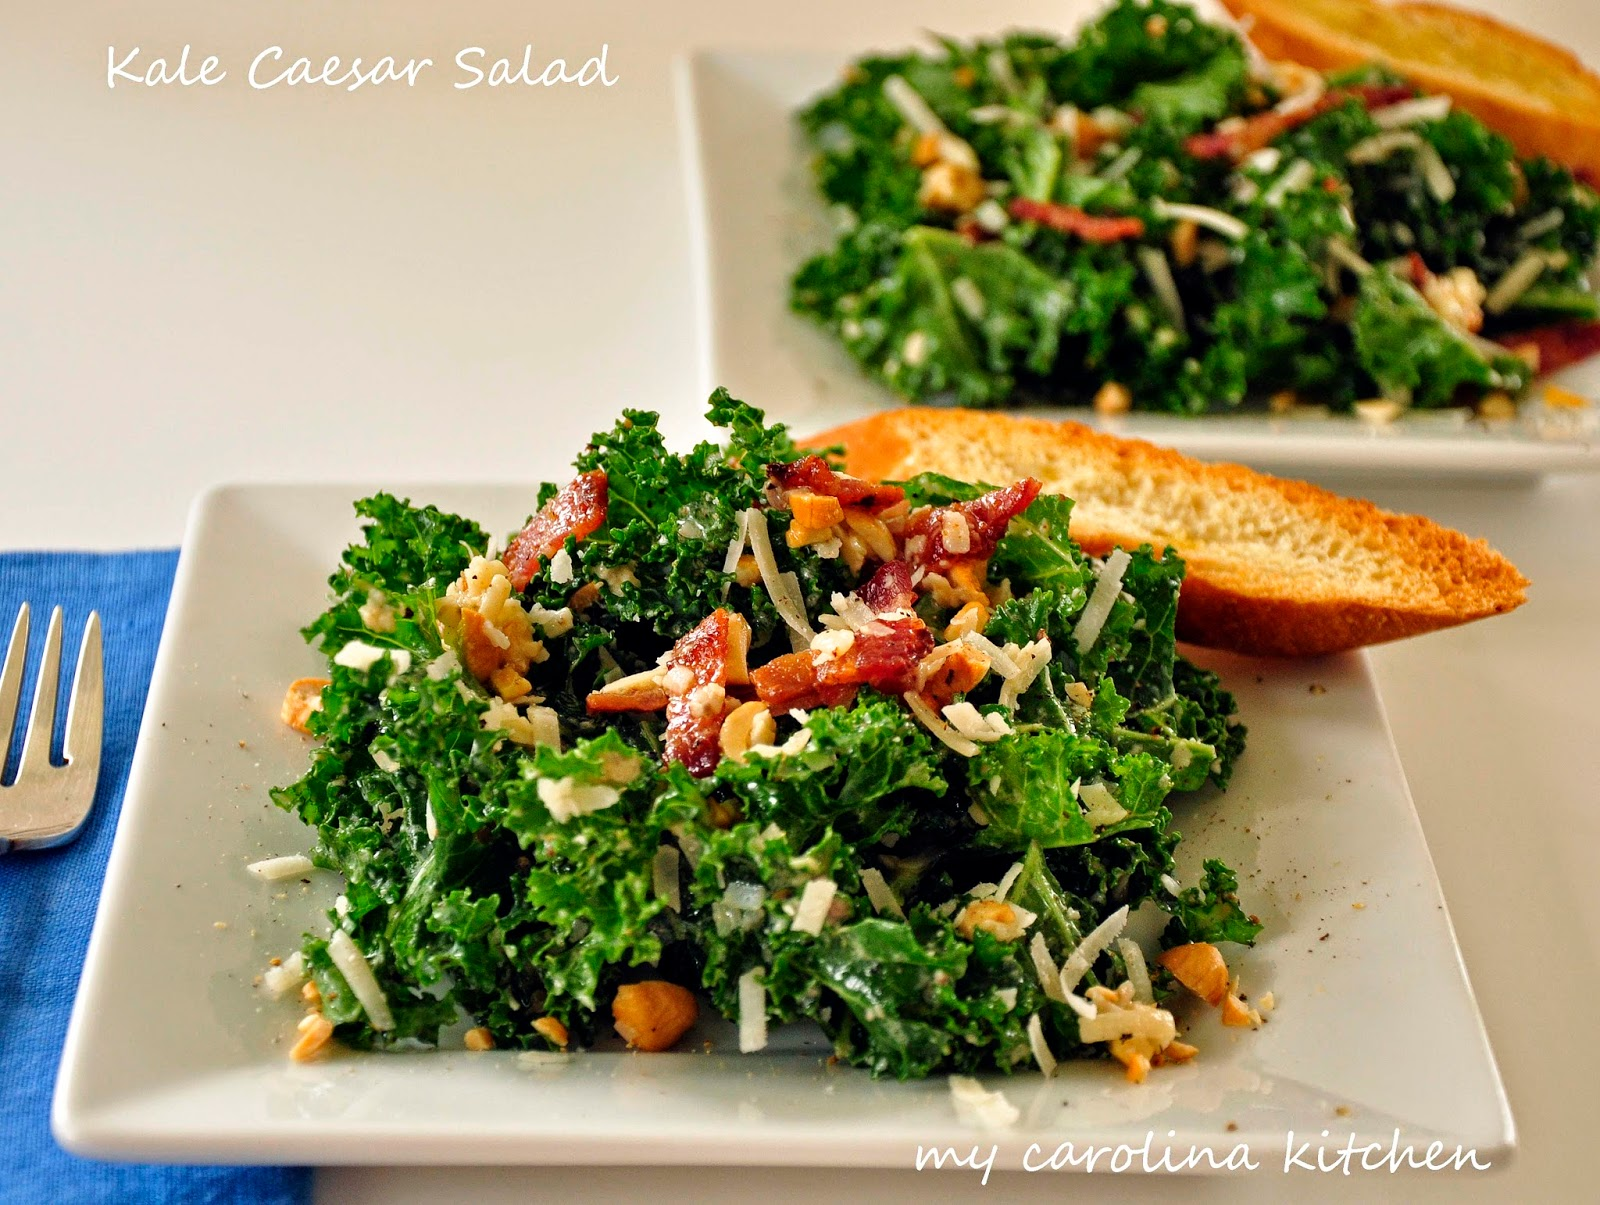 My Carolina Kitchen: Kale Caesar Salad with Smoky Bacon ...